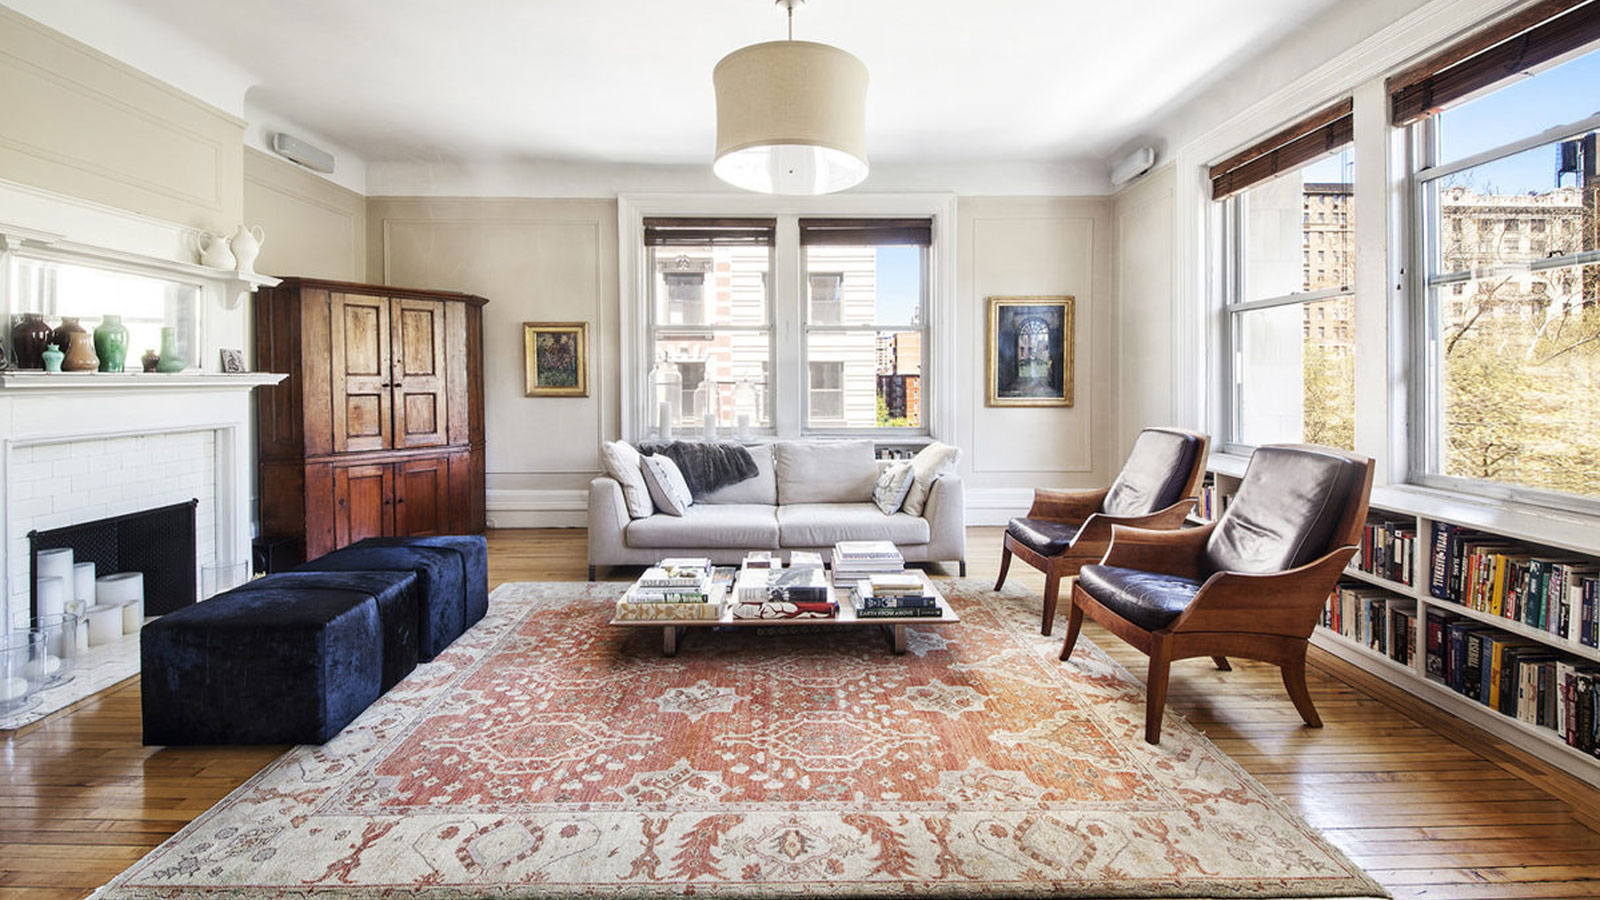 Orleans, 100 West 80th Street